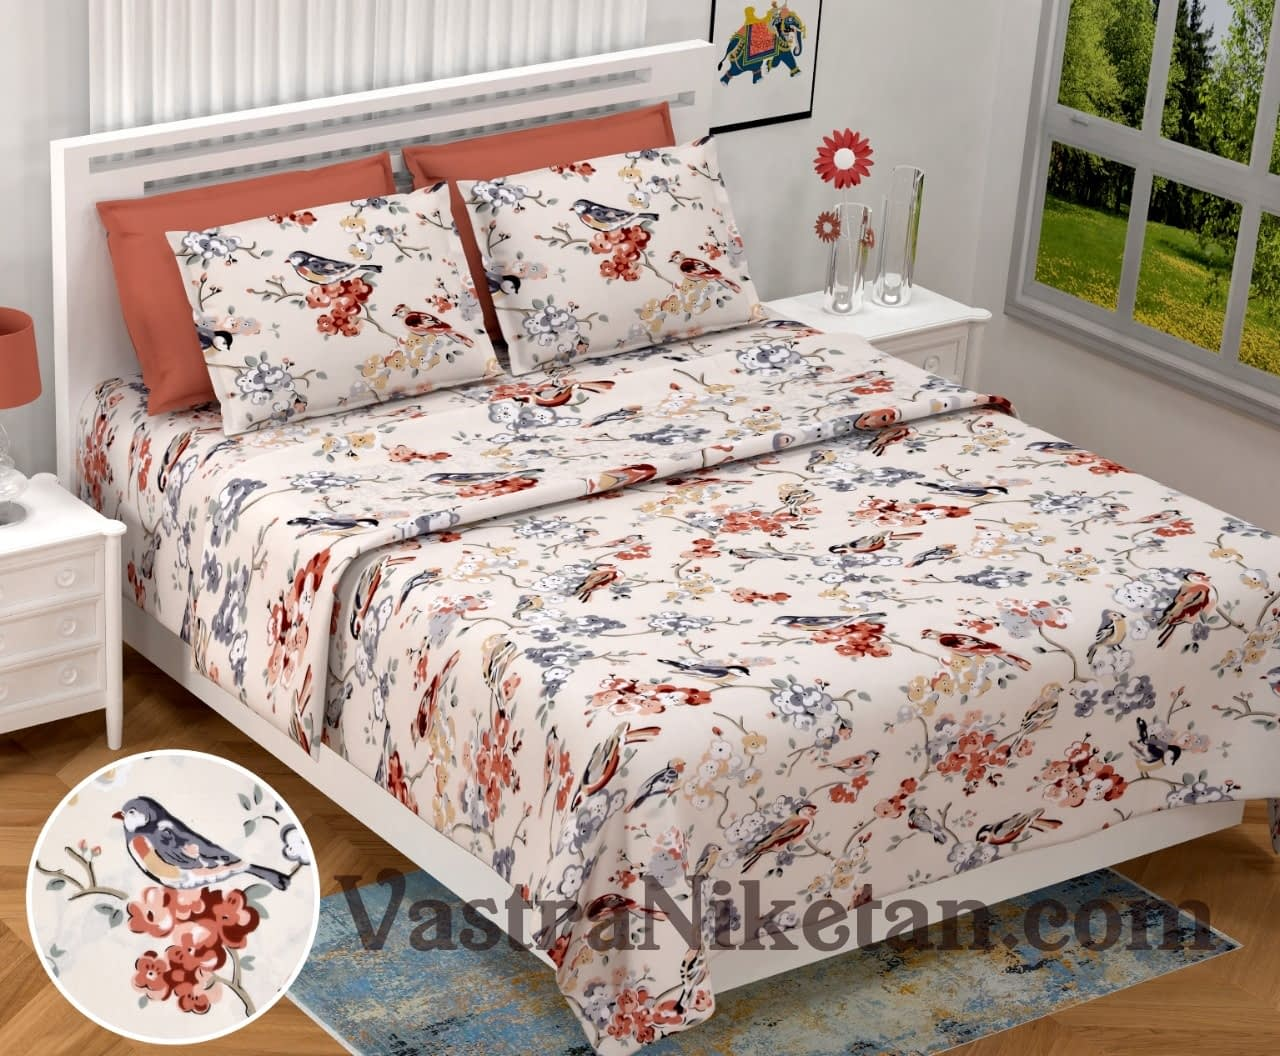 Heritage King Size Double Bedsheet with Sparrow and Floral print